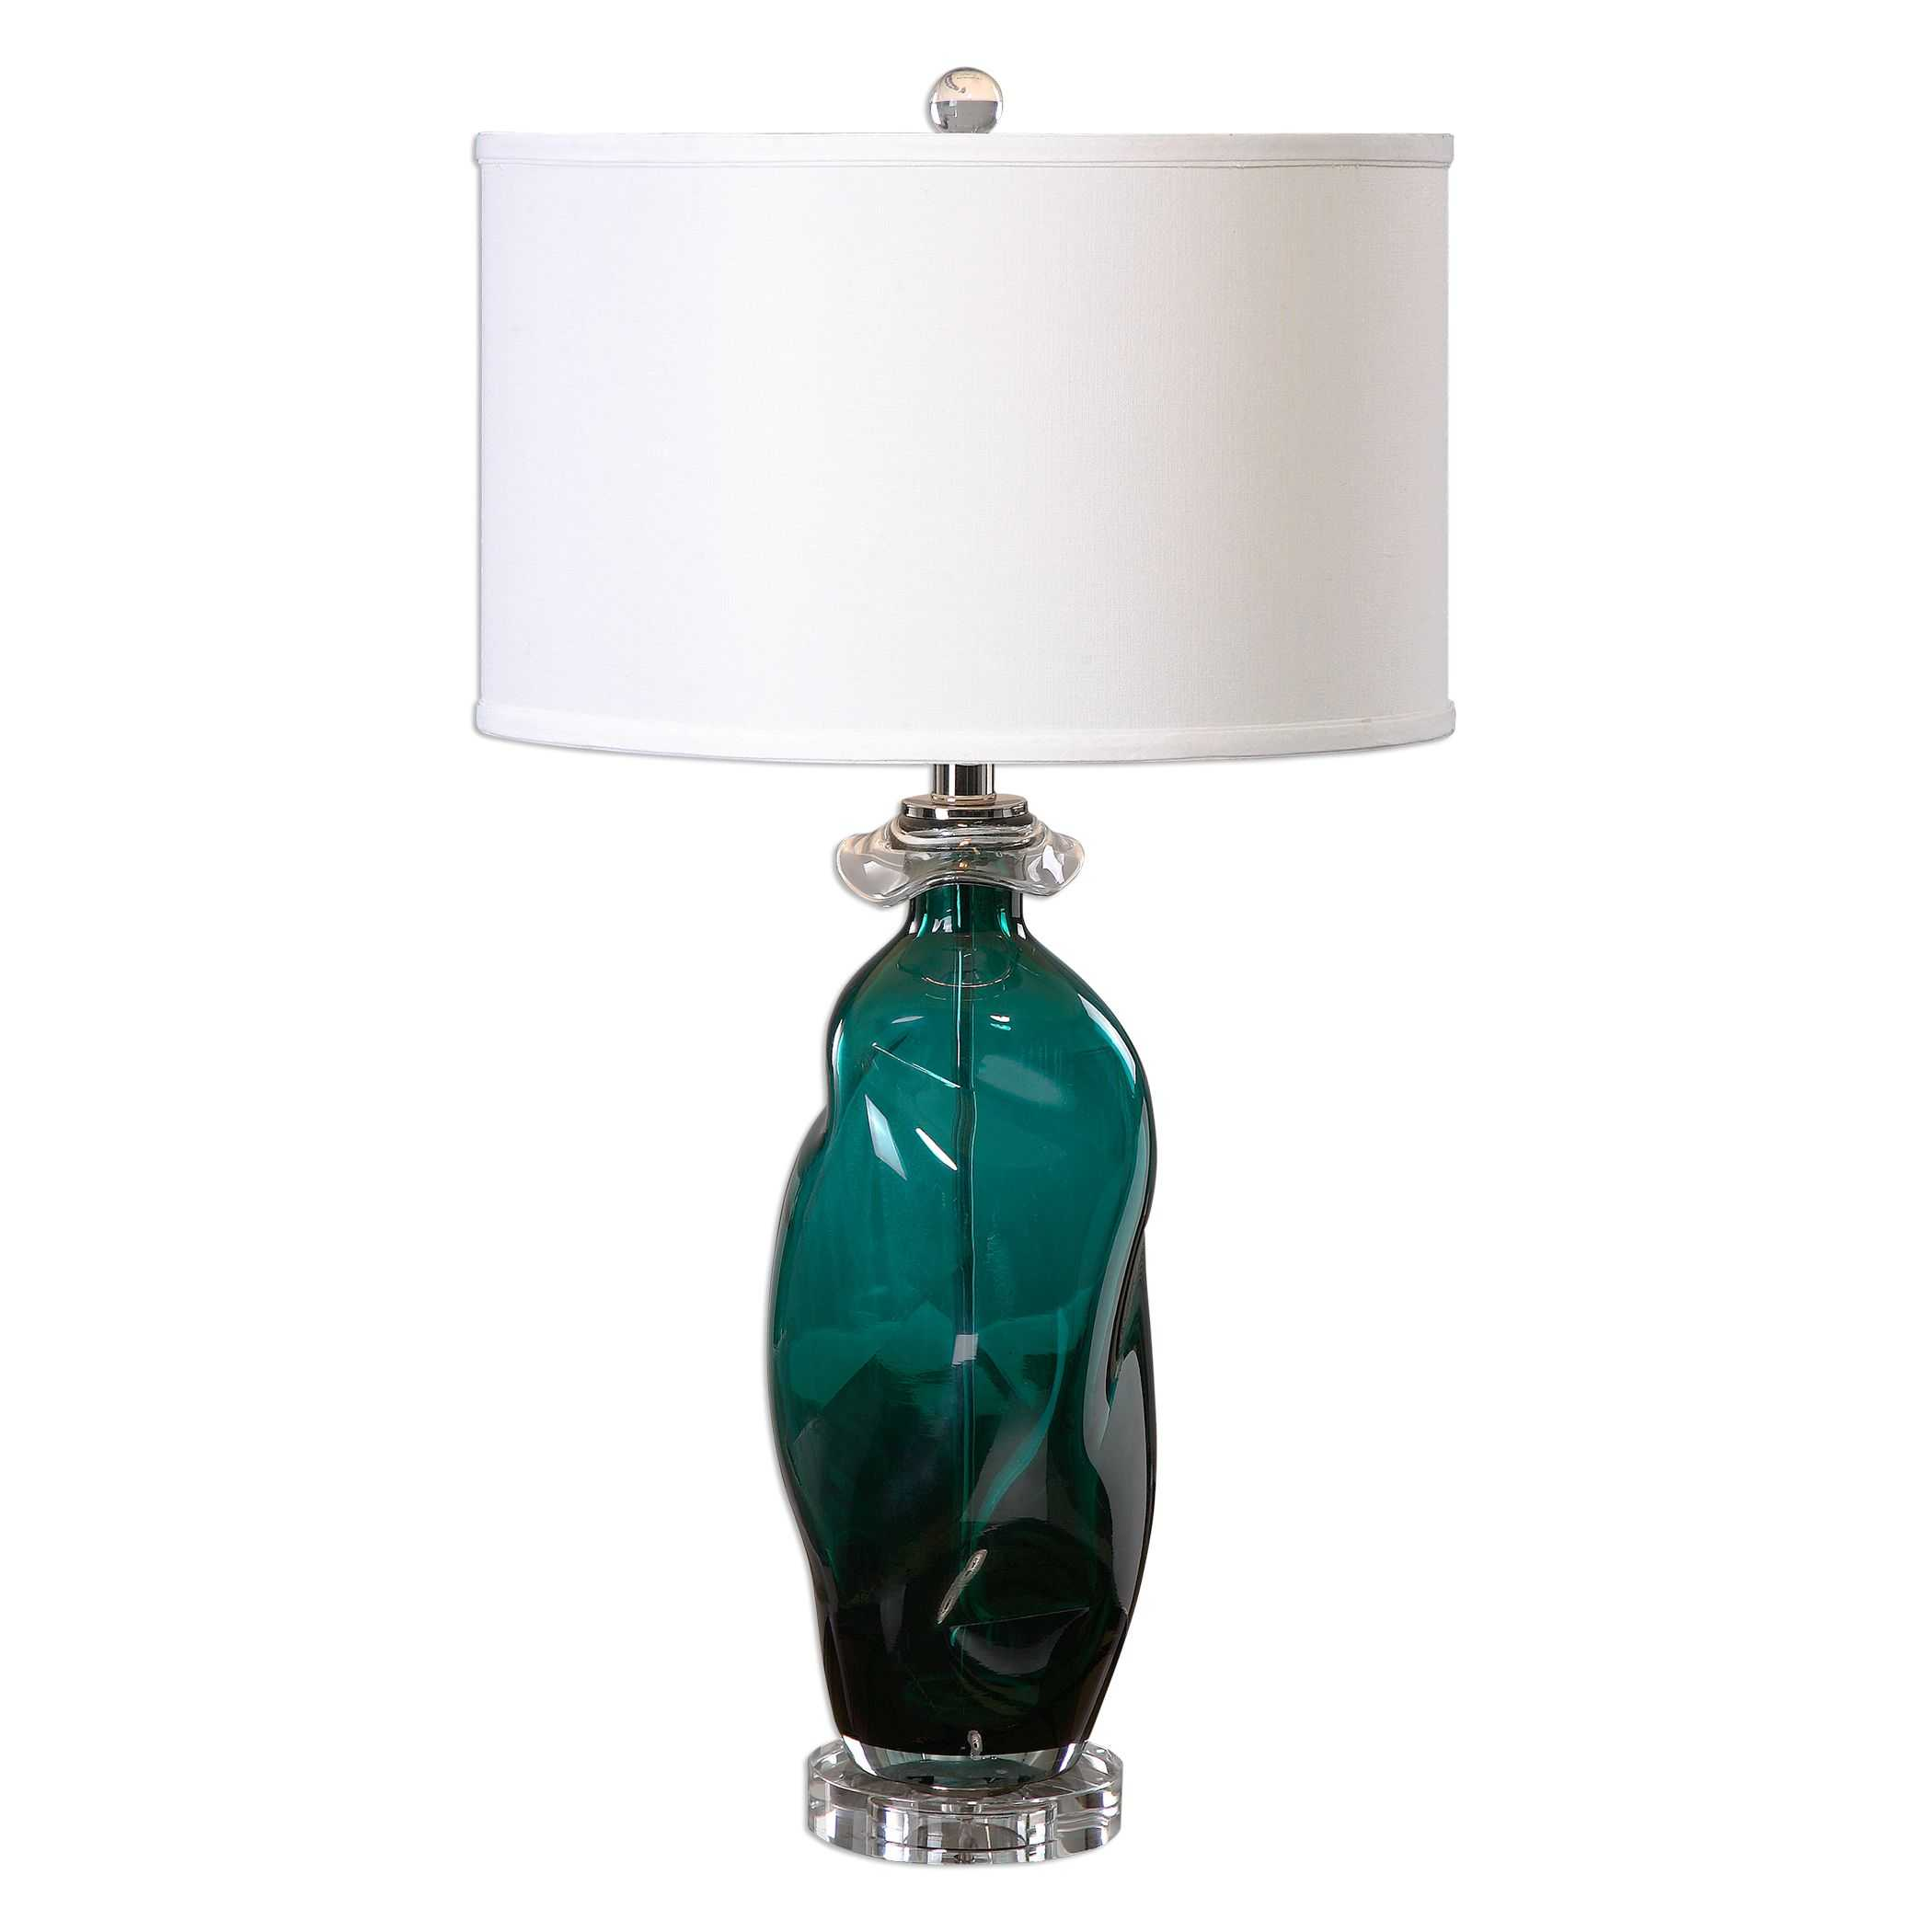 uttermost rotaldo blue green glass table lamp. Black Bedroom Furniture Sets. Home Design Ideas